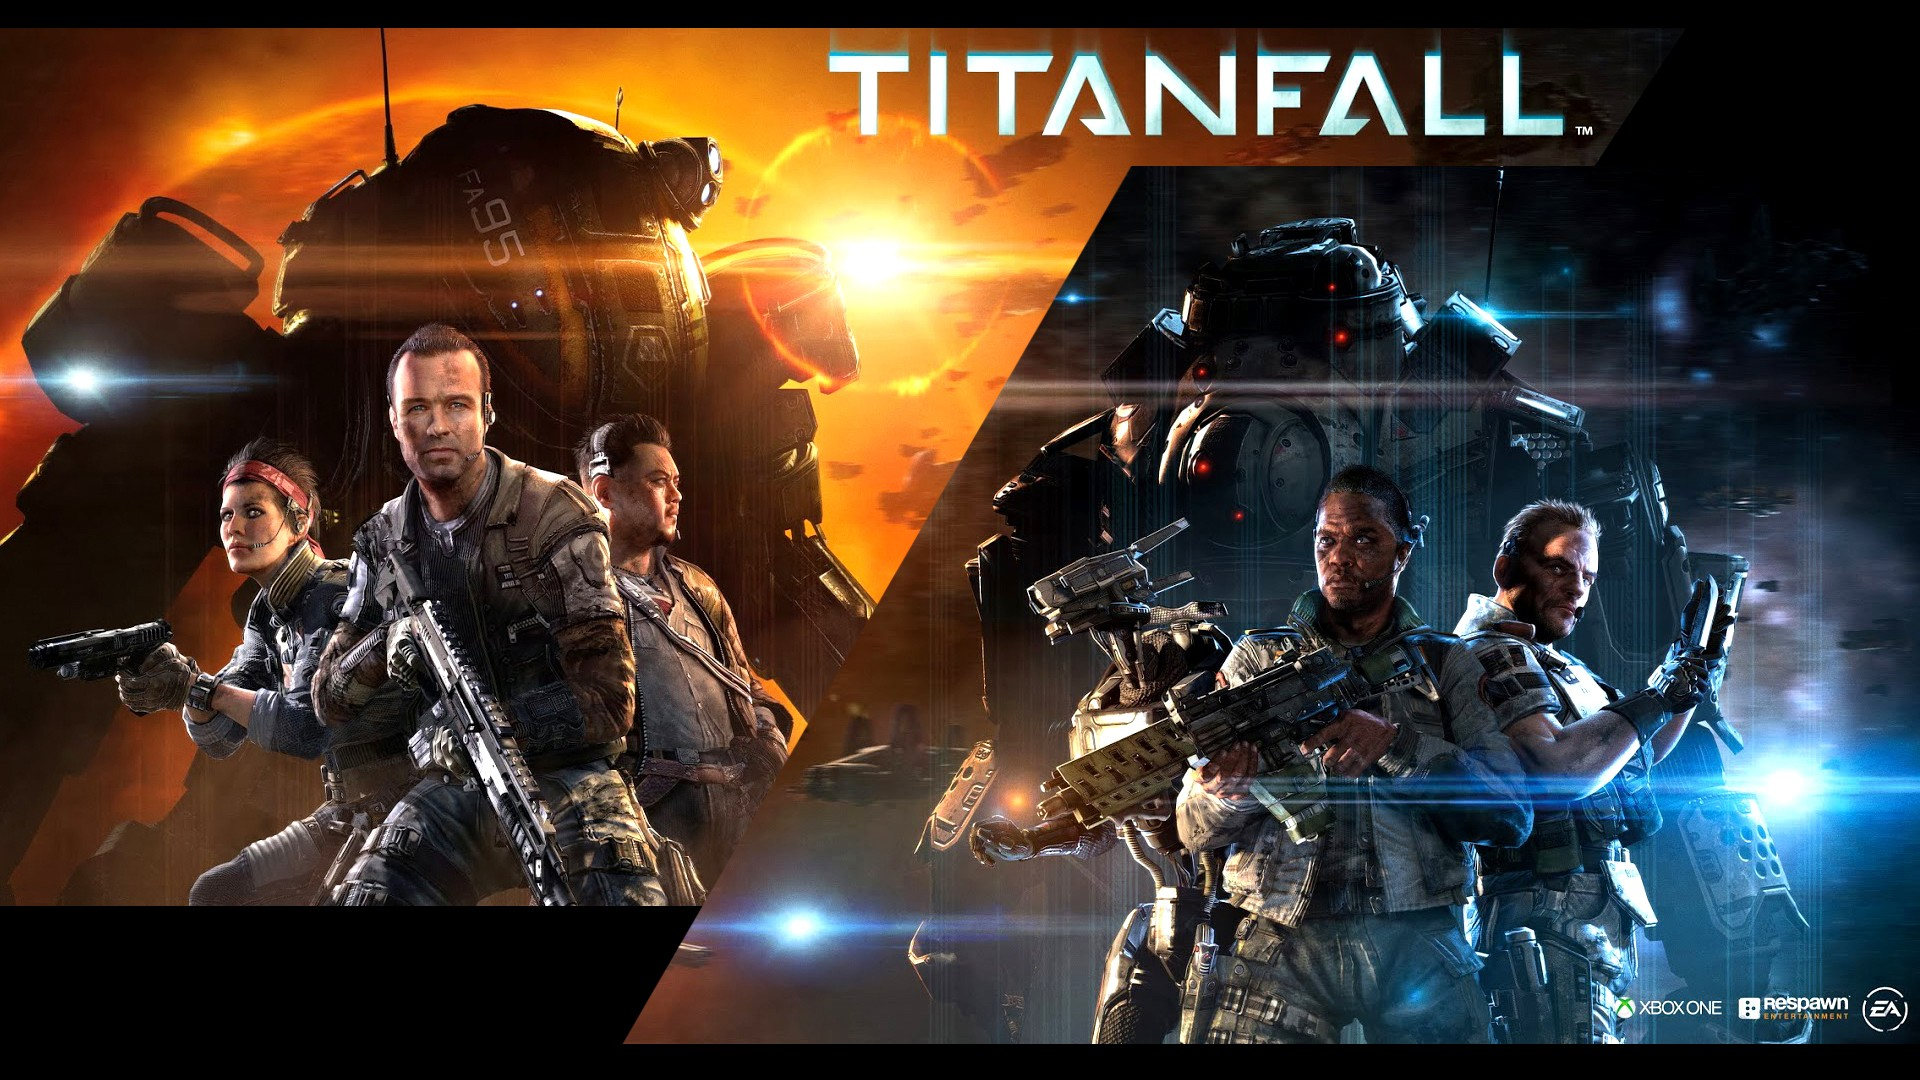 The Titanfall campaign is average at best and proves that storytelling isn't Respawn's strong point.